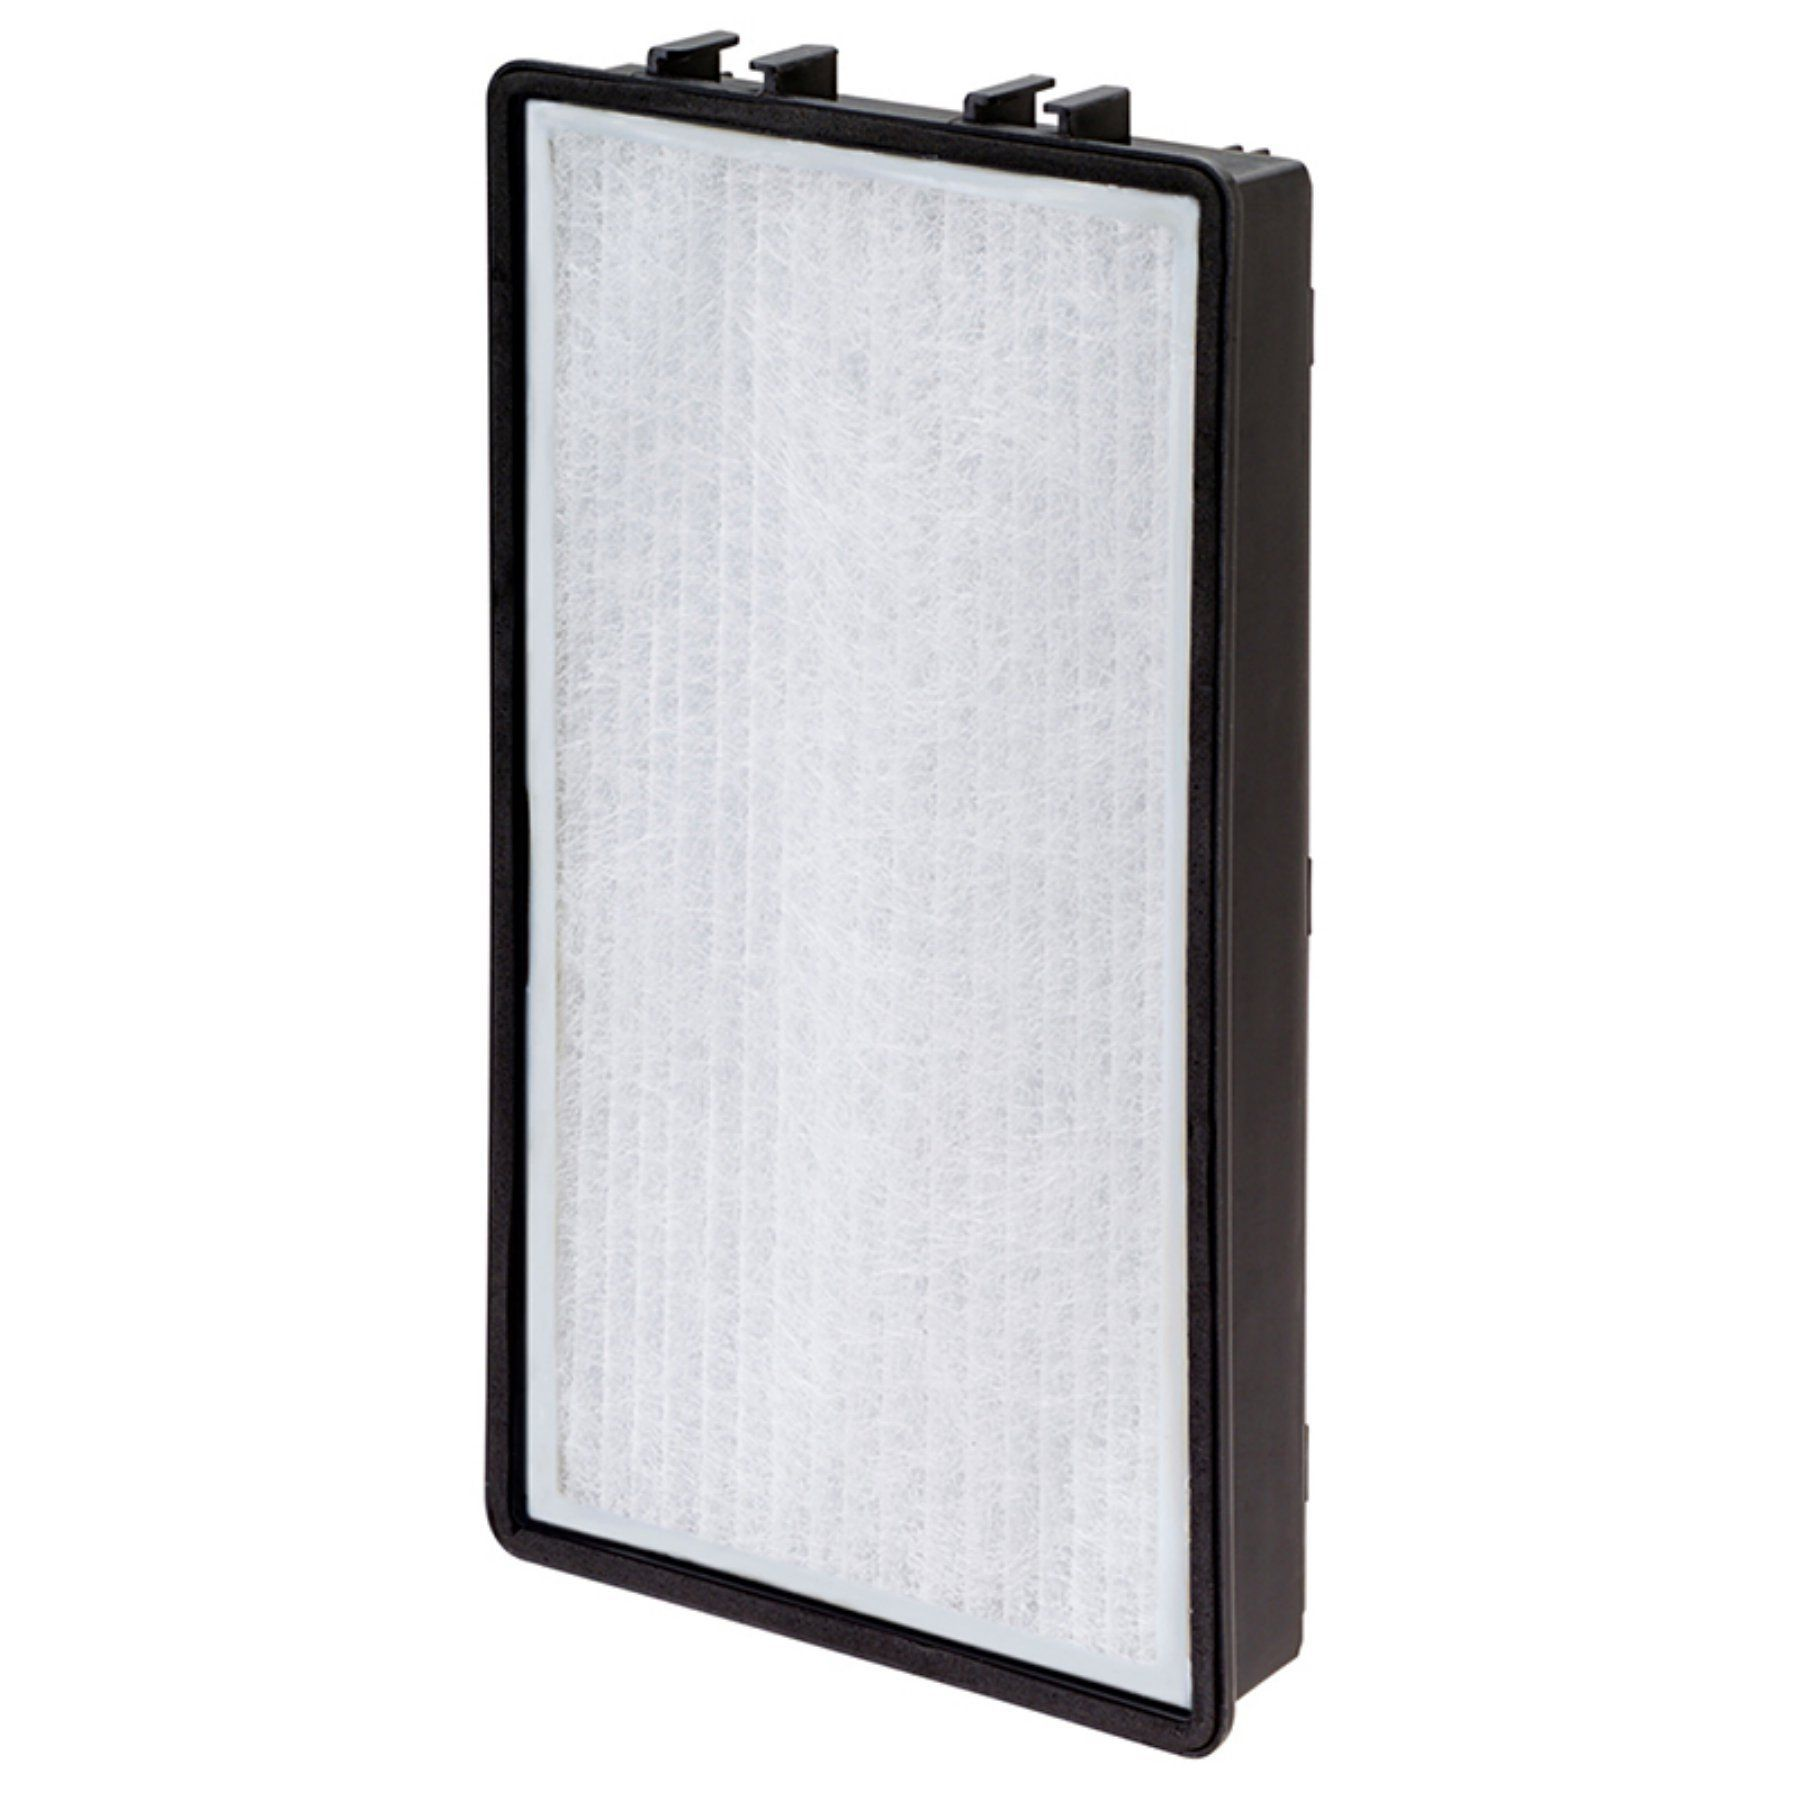 Crane HS3508 HEPAType Air Purifier Filter for Frog HS